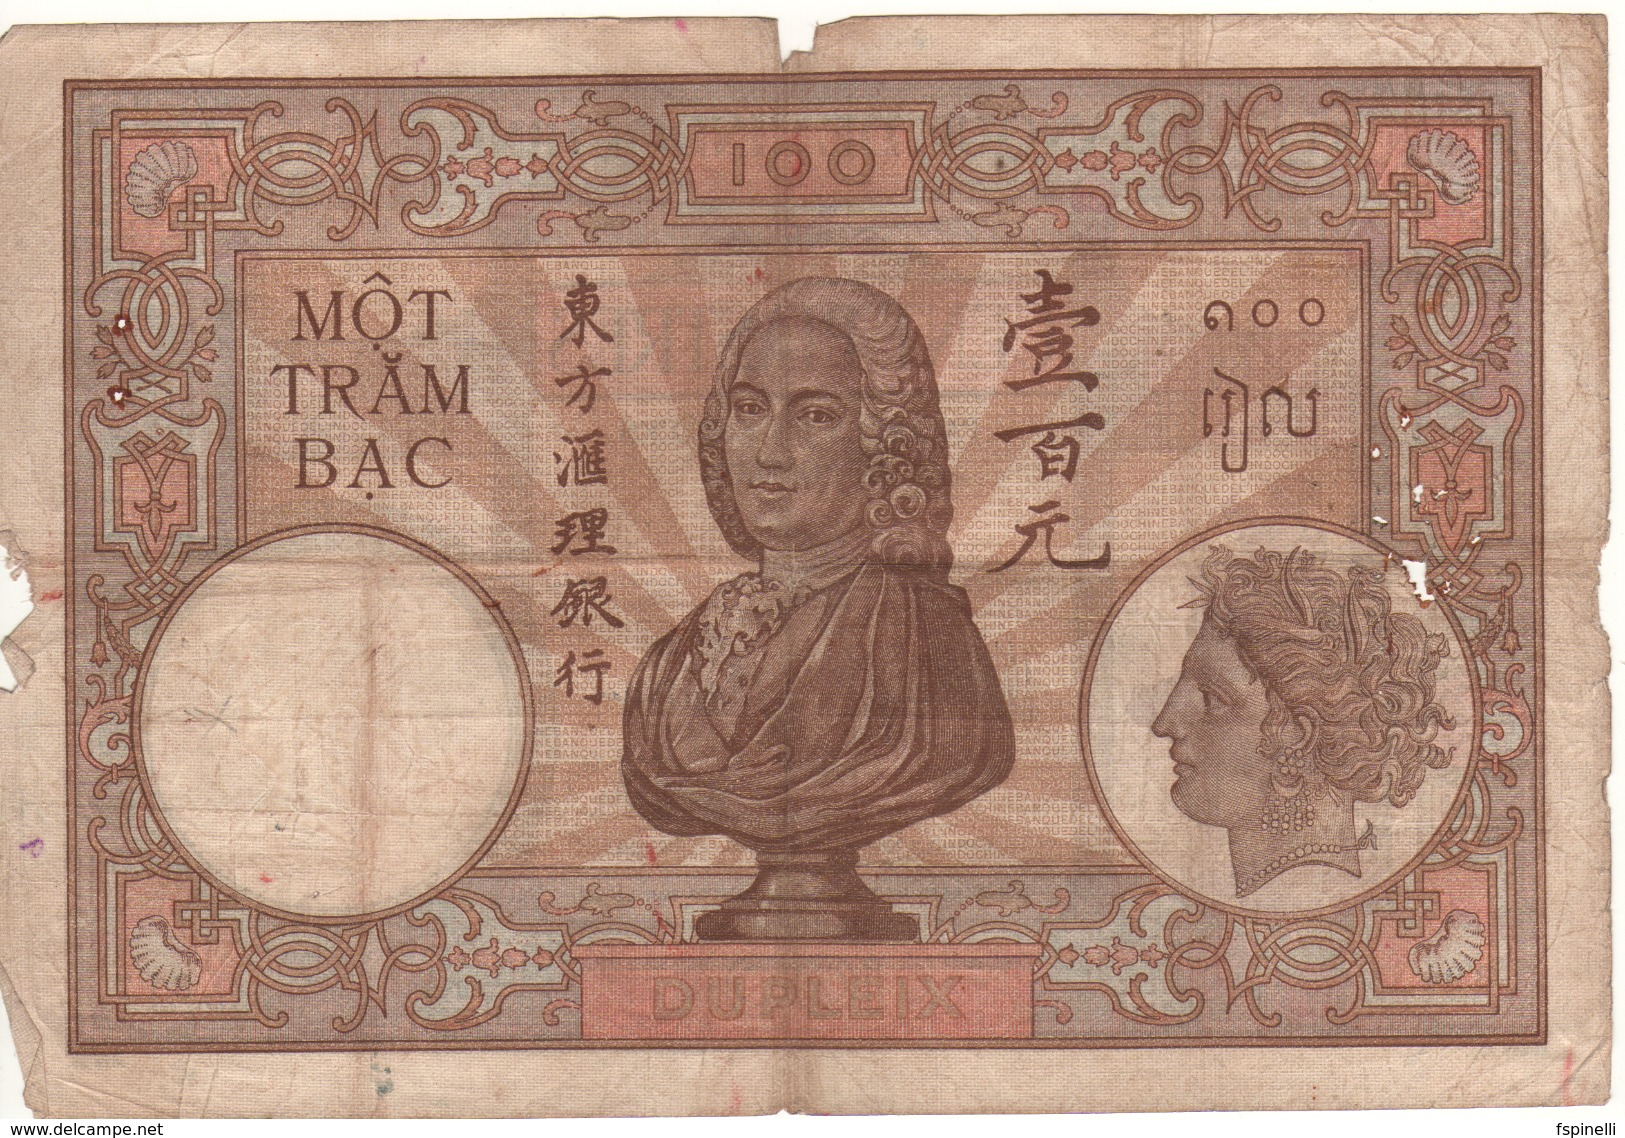 FRENCH INDOCHINA 100 Piastres (ND 1939) P51 - Indochine